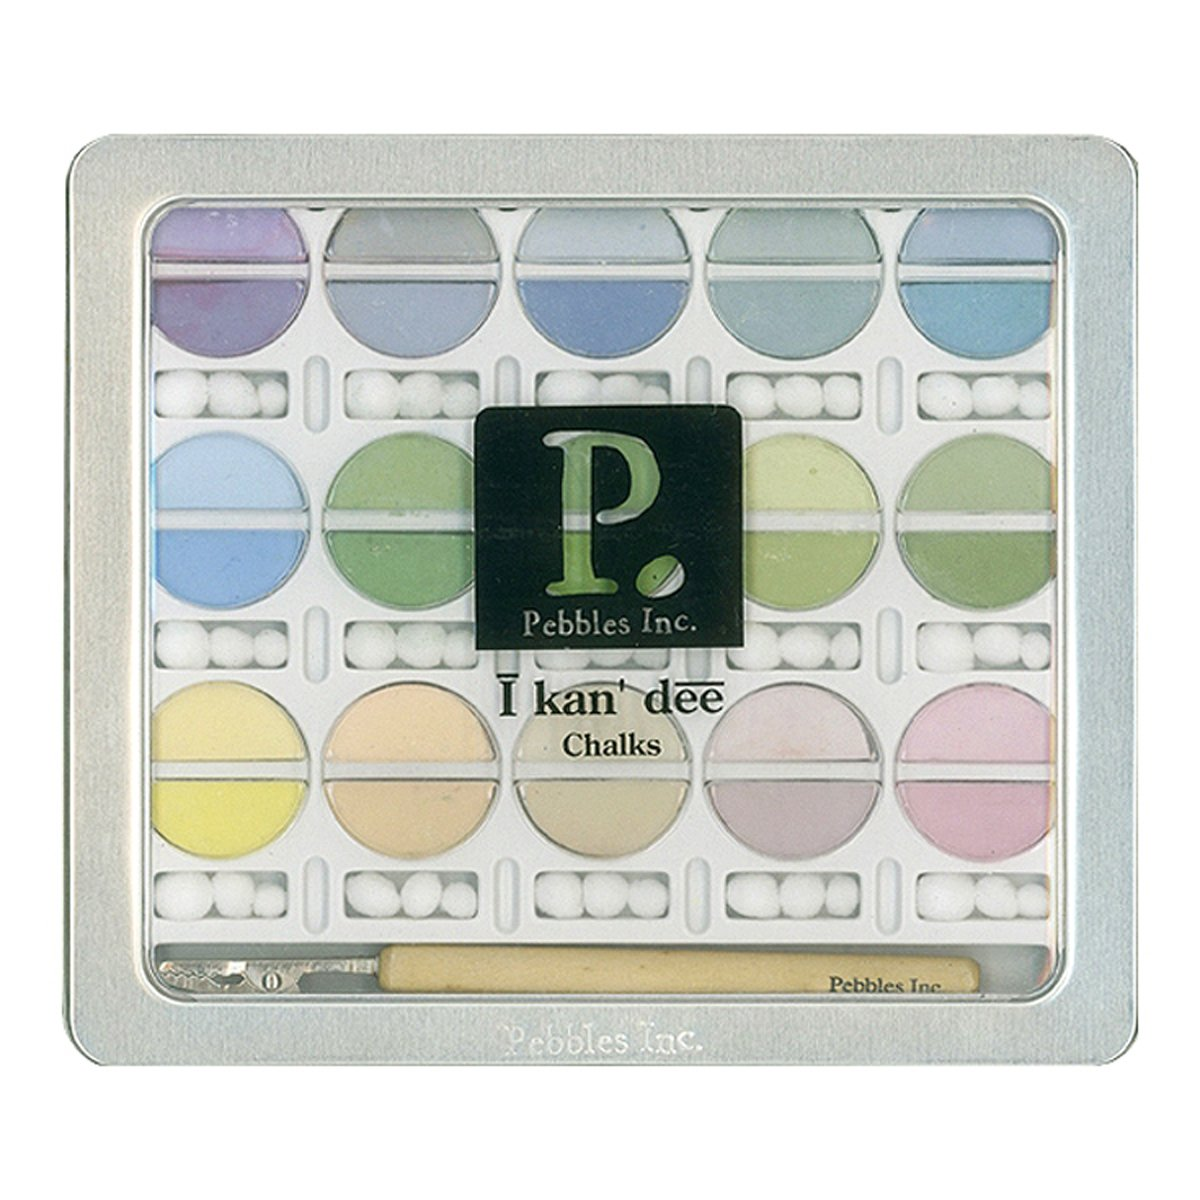 Pebbles Inc. I Kan'dee Chalk Set, Pastels